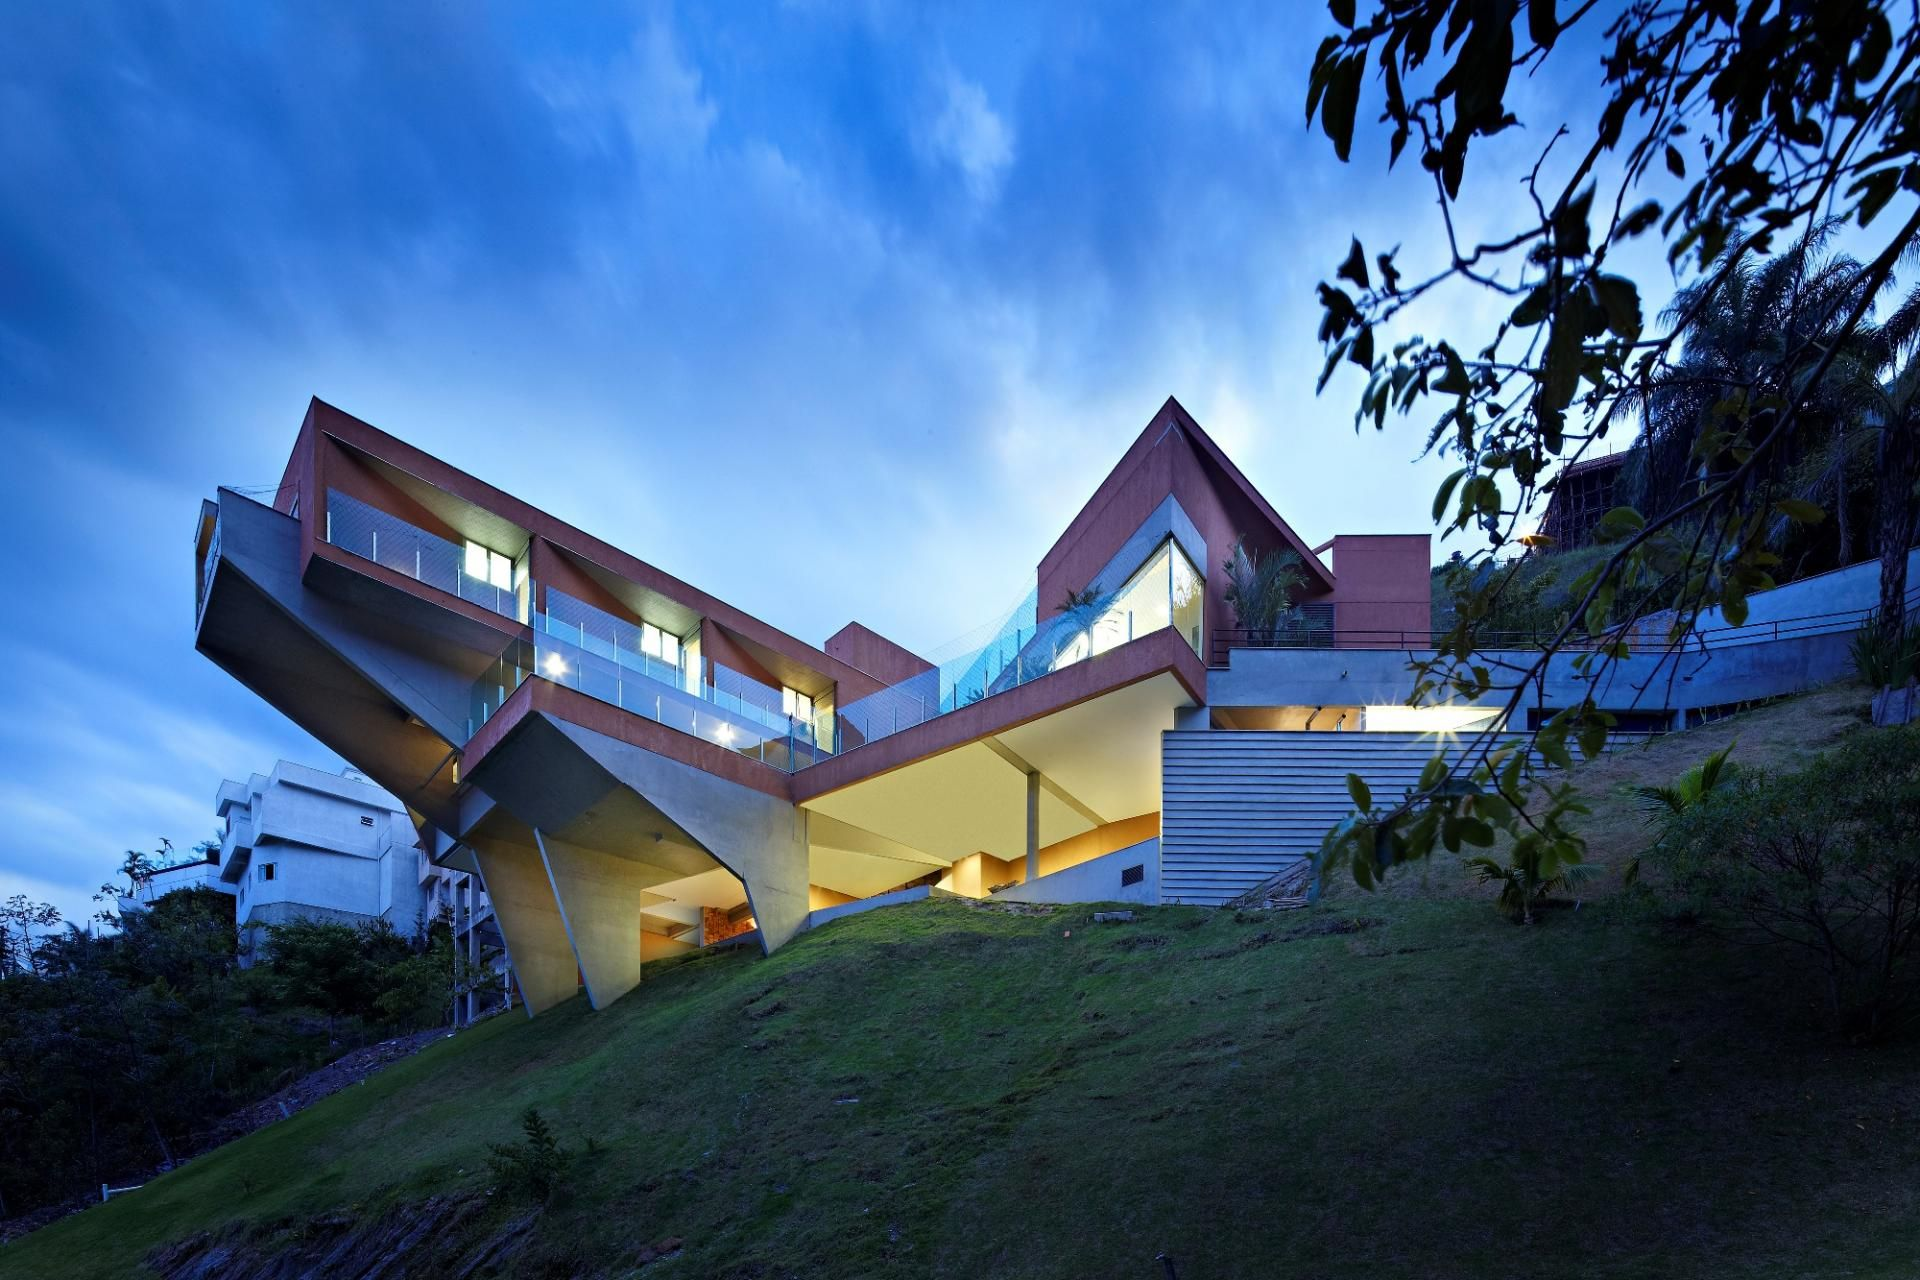 Sculptural Concrete House Built on a Steep Slope Architecture